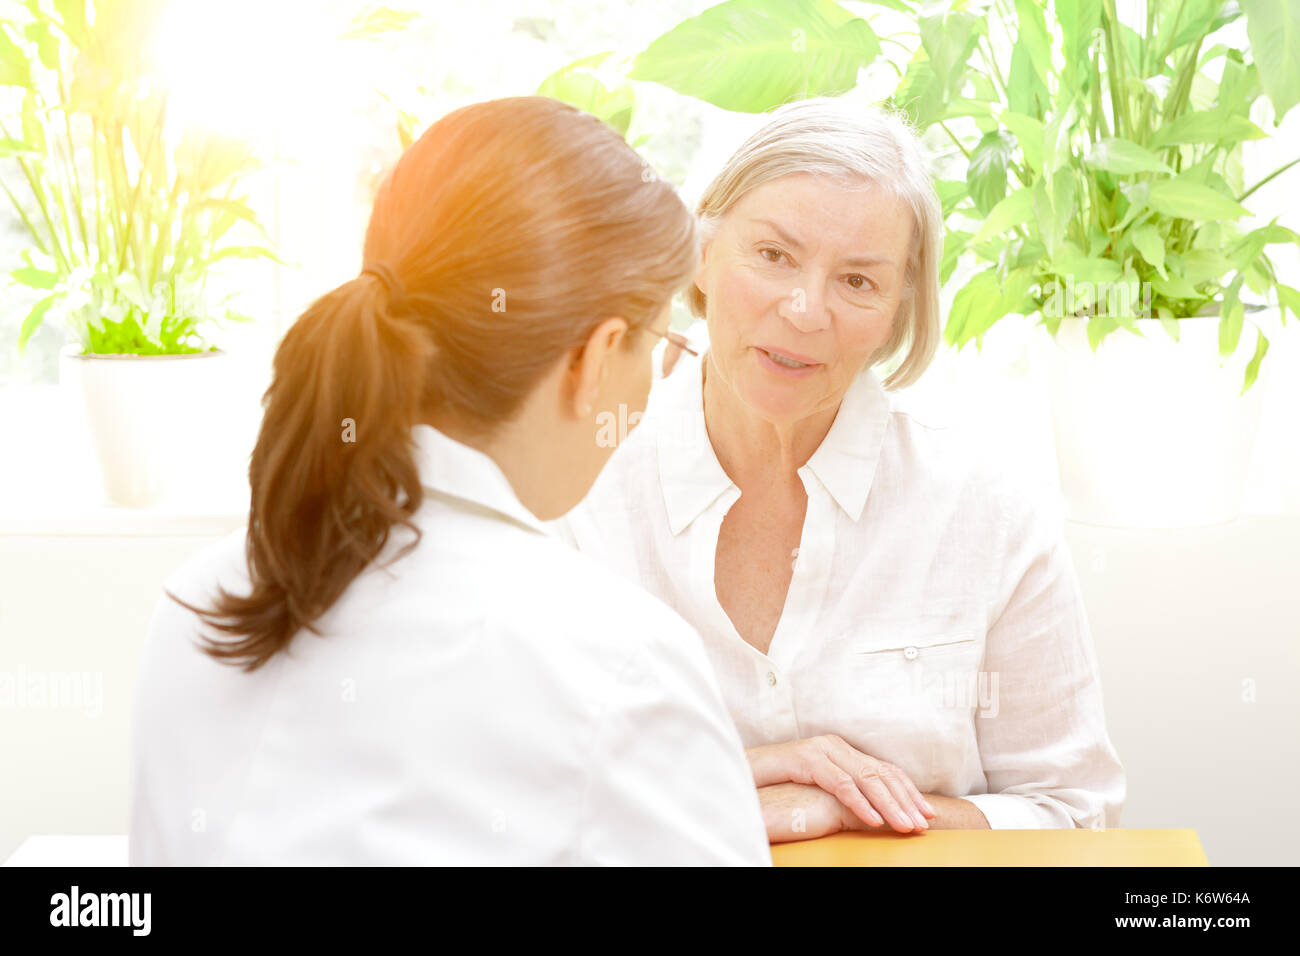 Senior patient discussing something in confidence with her female doctor of geriatrics on a sunny afternoon, friendly Stock Photo